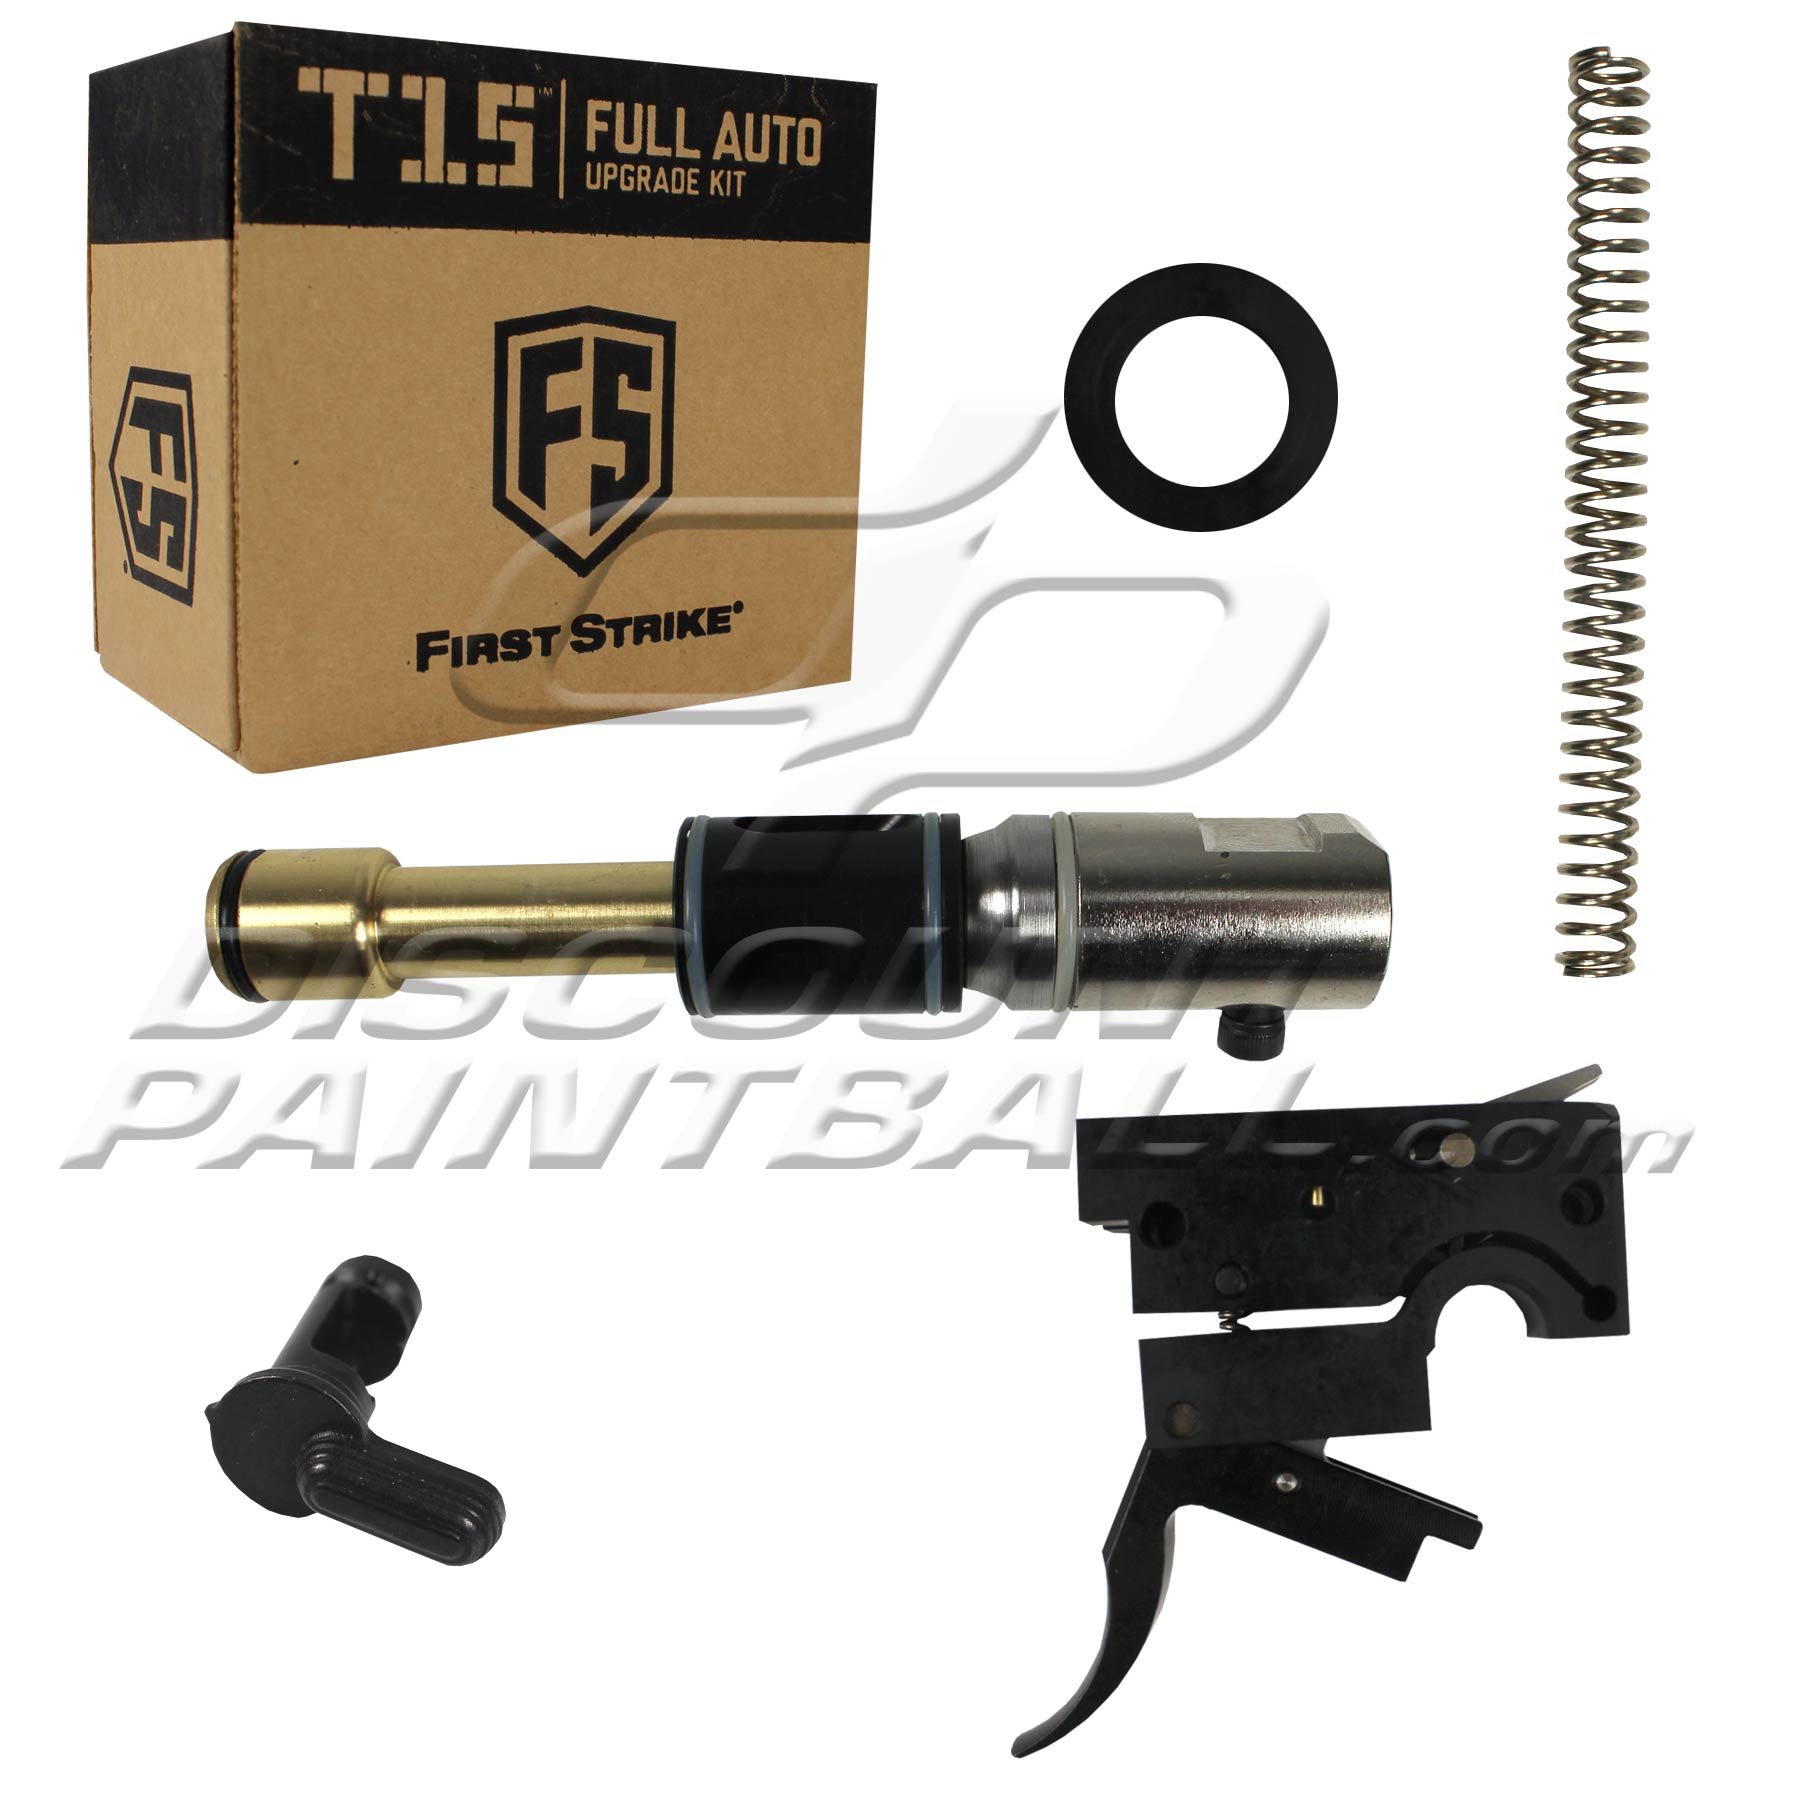 First Strike T15 Full Auto Upgrade Kit T15SF